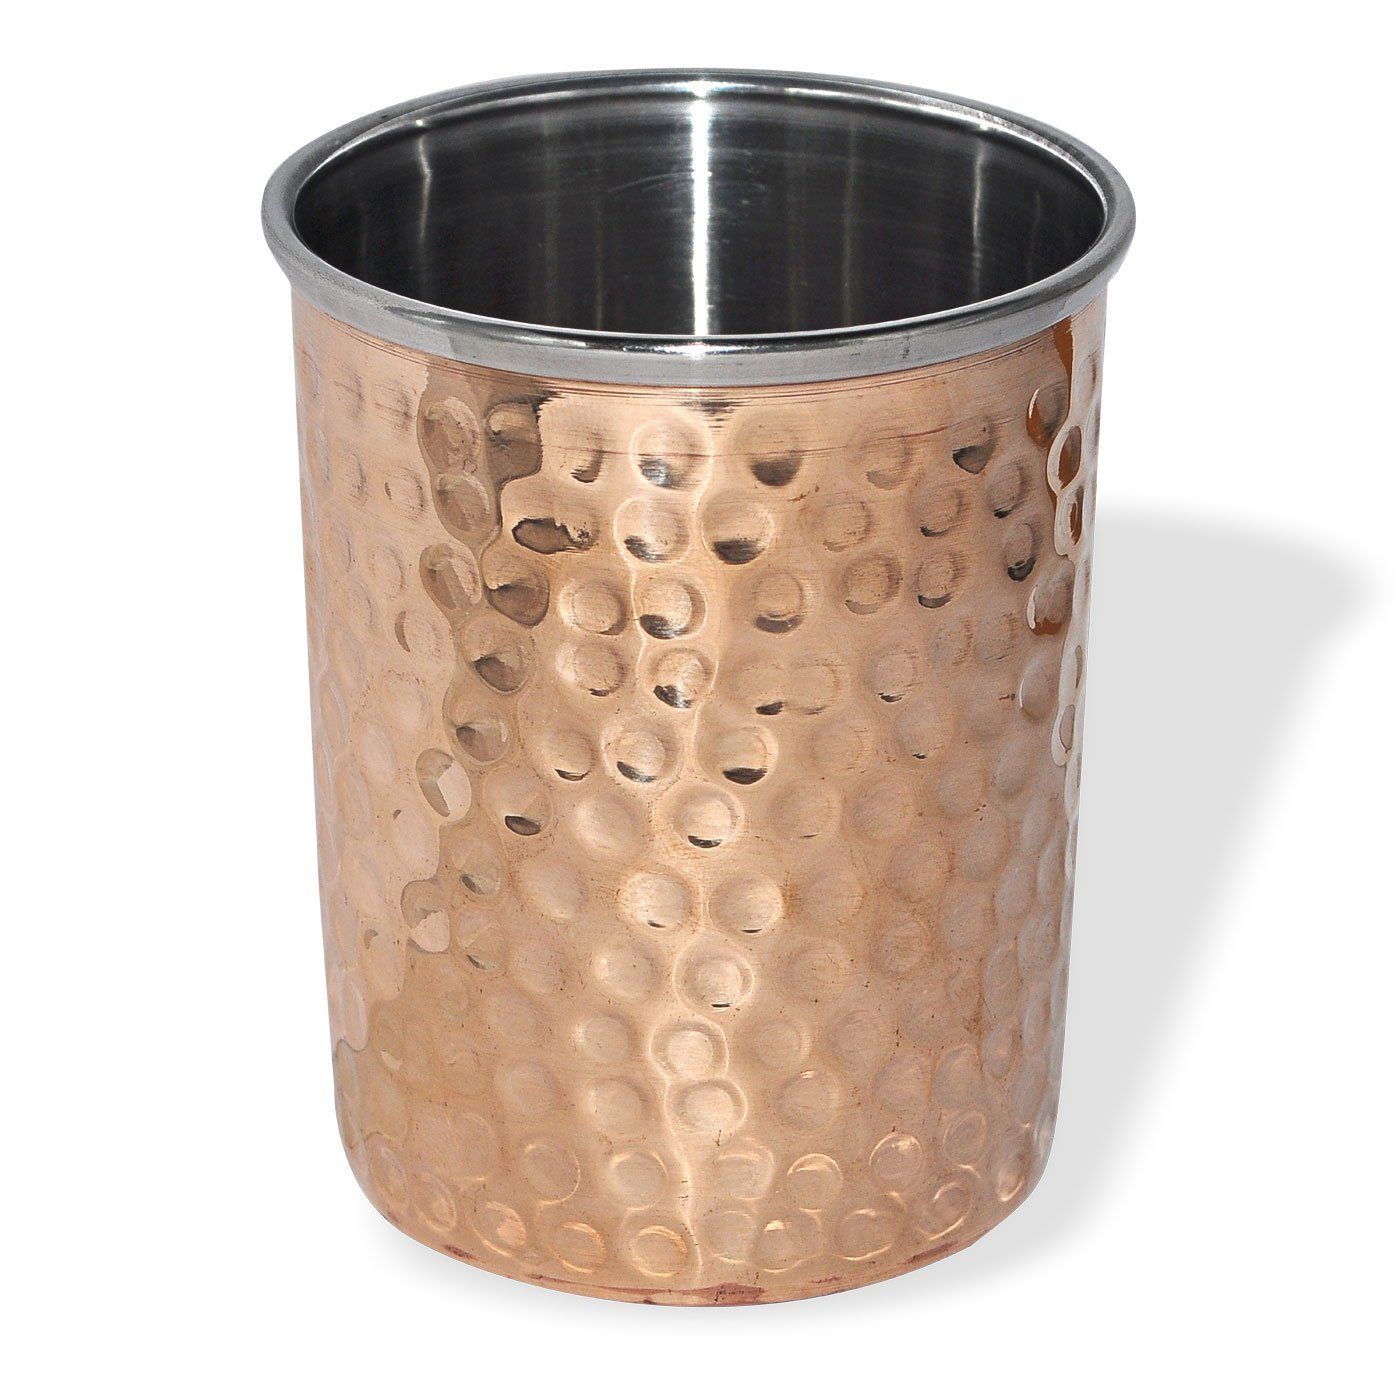 Buy Hammered Copper Handmade Tumbler Glass Online at Low Prices in ...